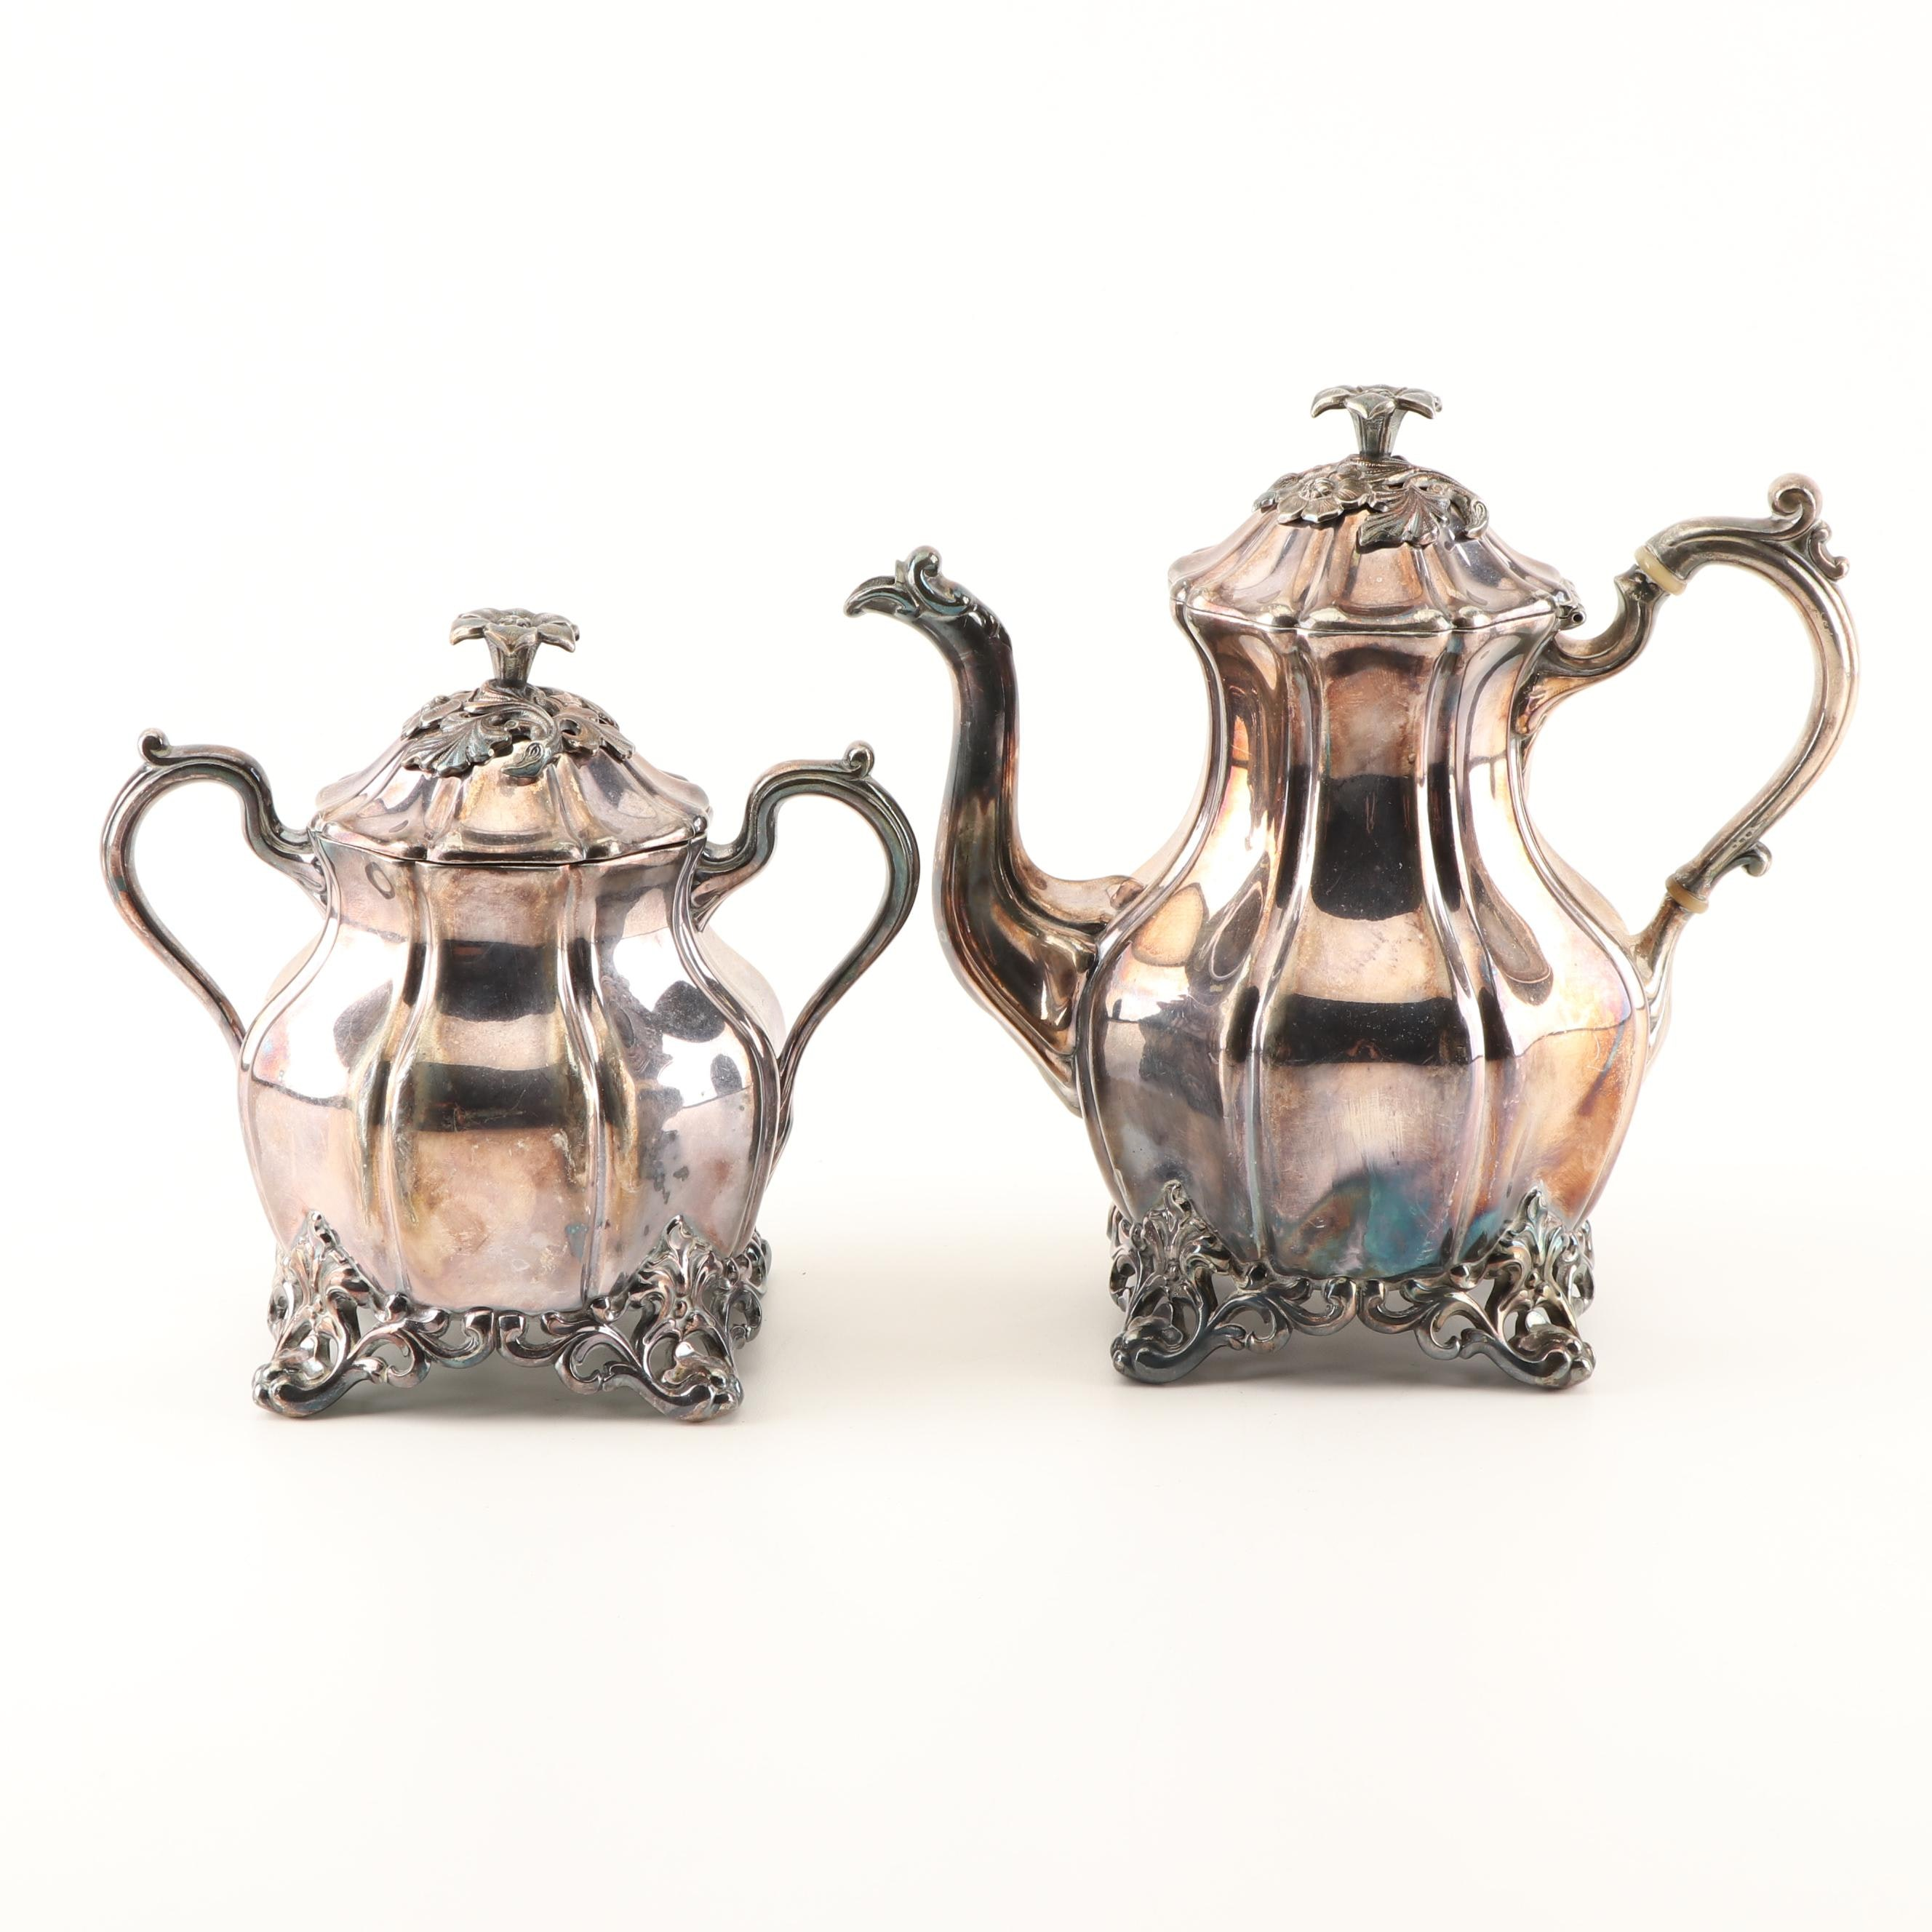 Silver Plated Teapot and Sugar Bowl